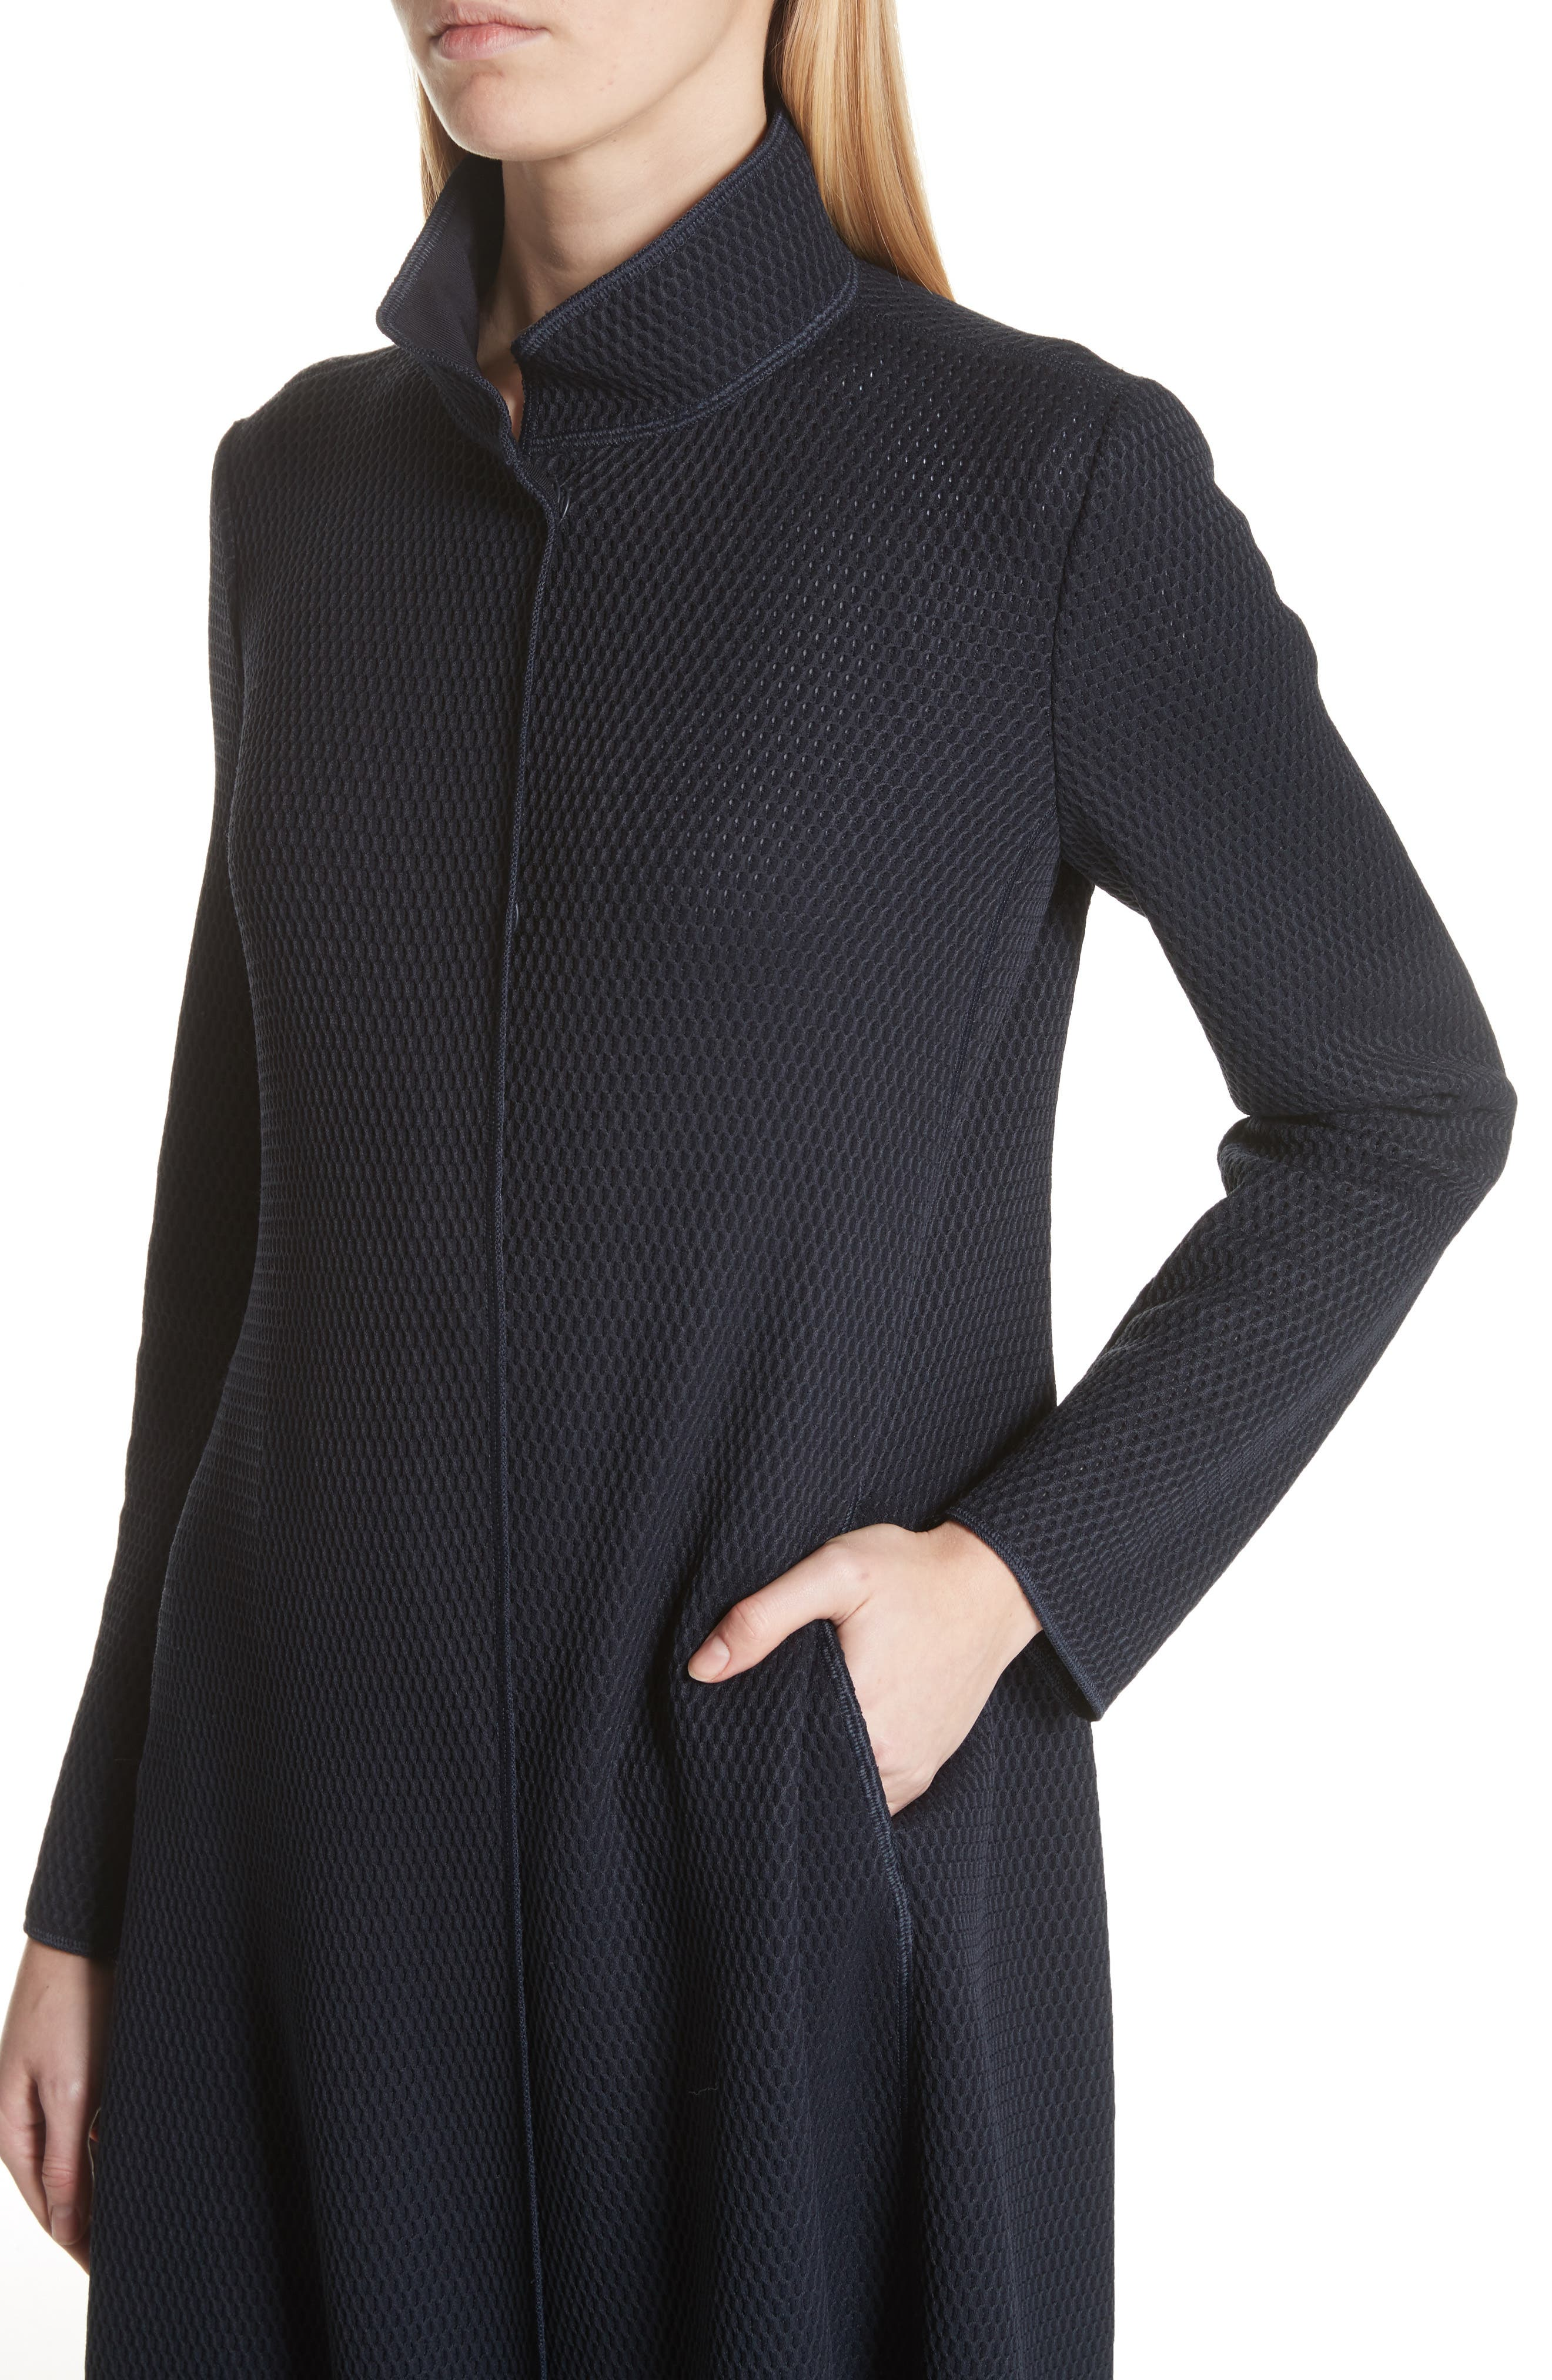 Honeycomb Knit Jersey Coat,                             Alternate thumbnail 4, color,